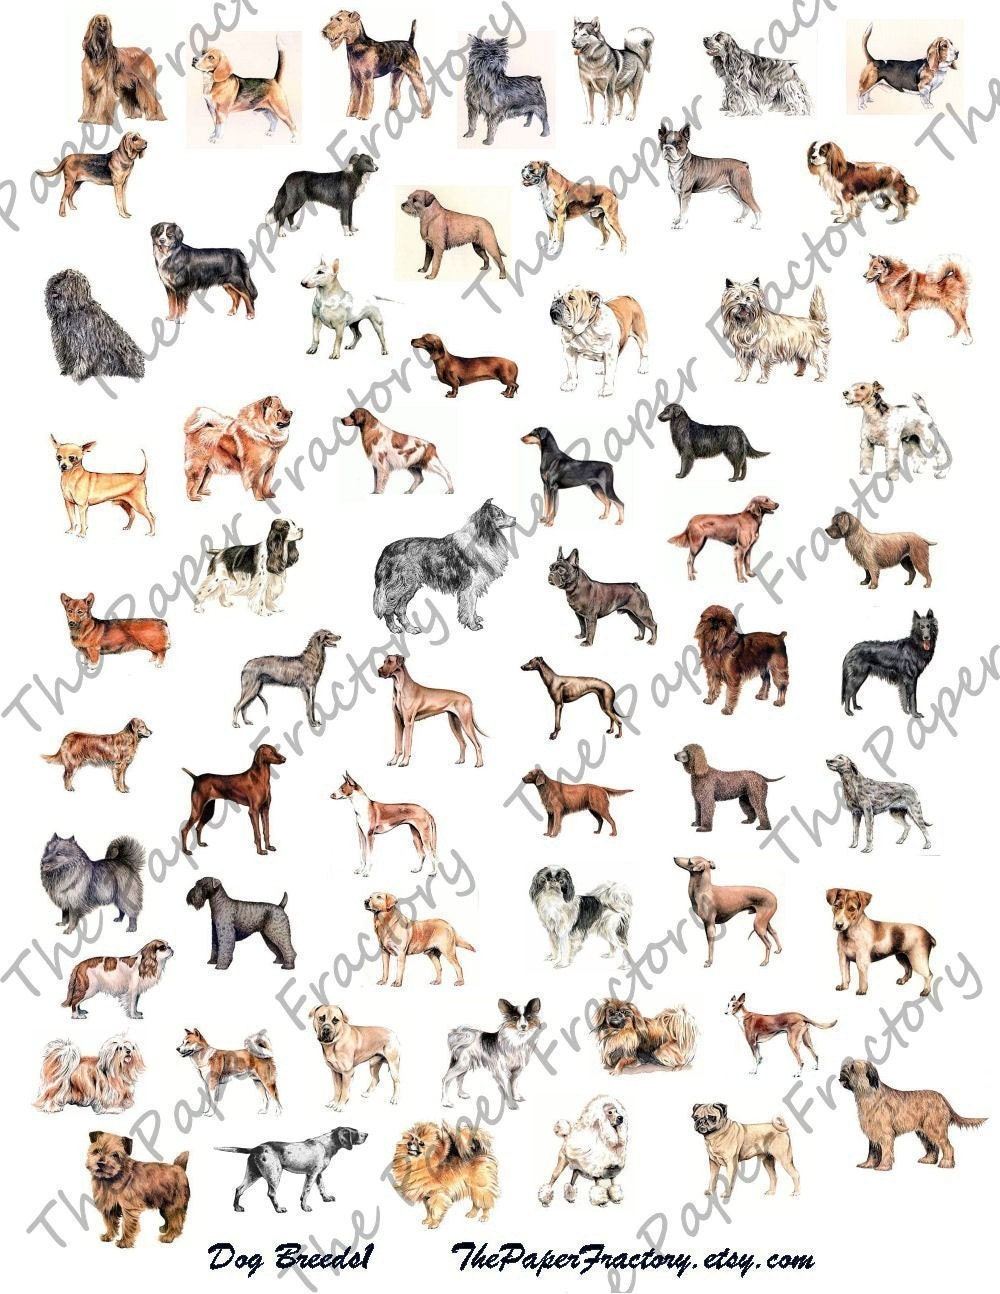 Dog breeds with pictures and names